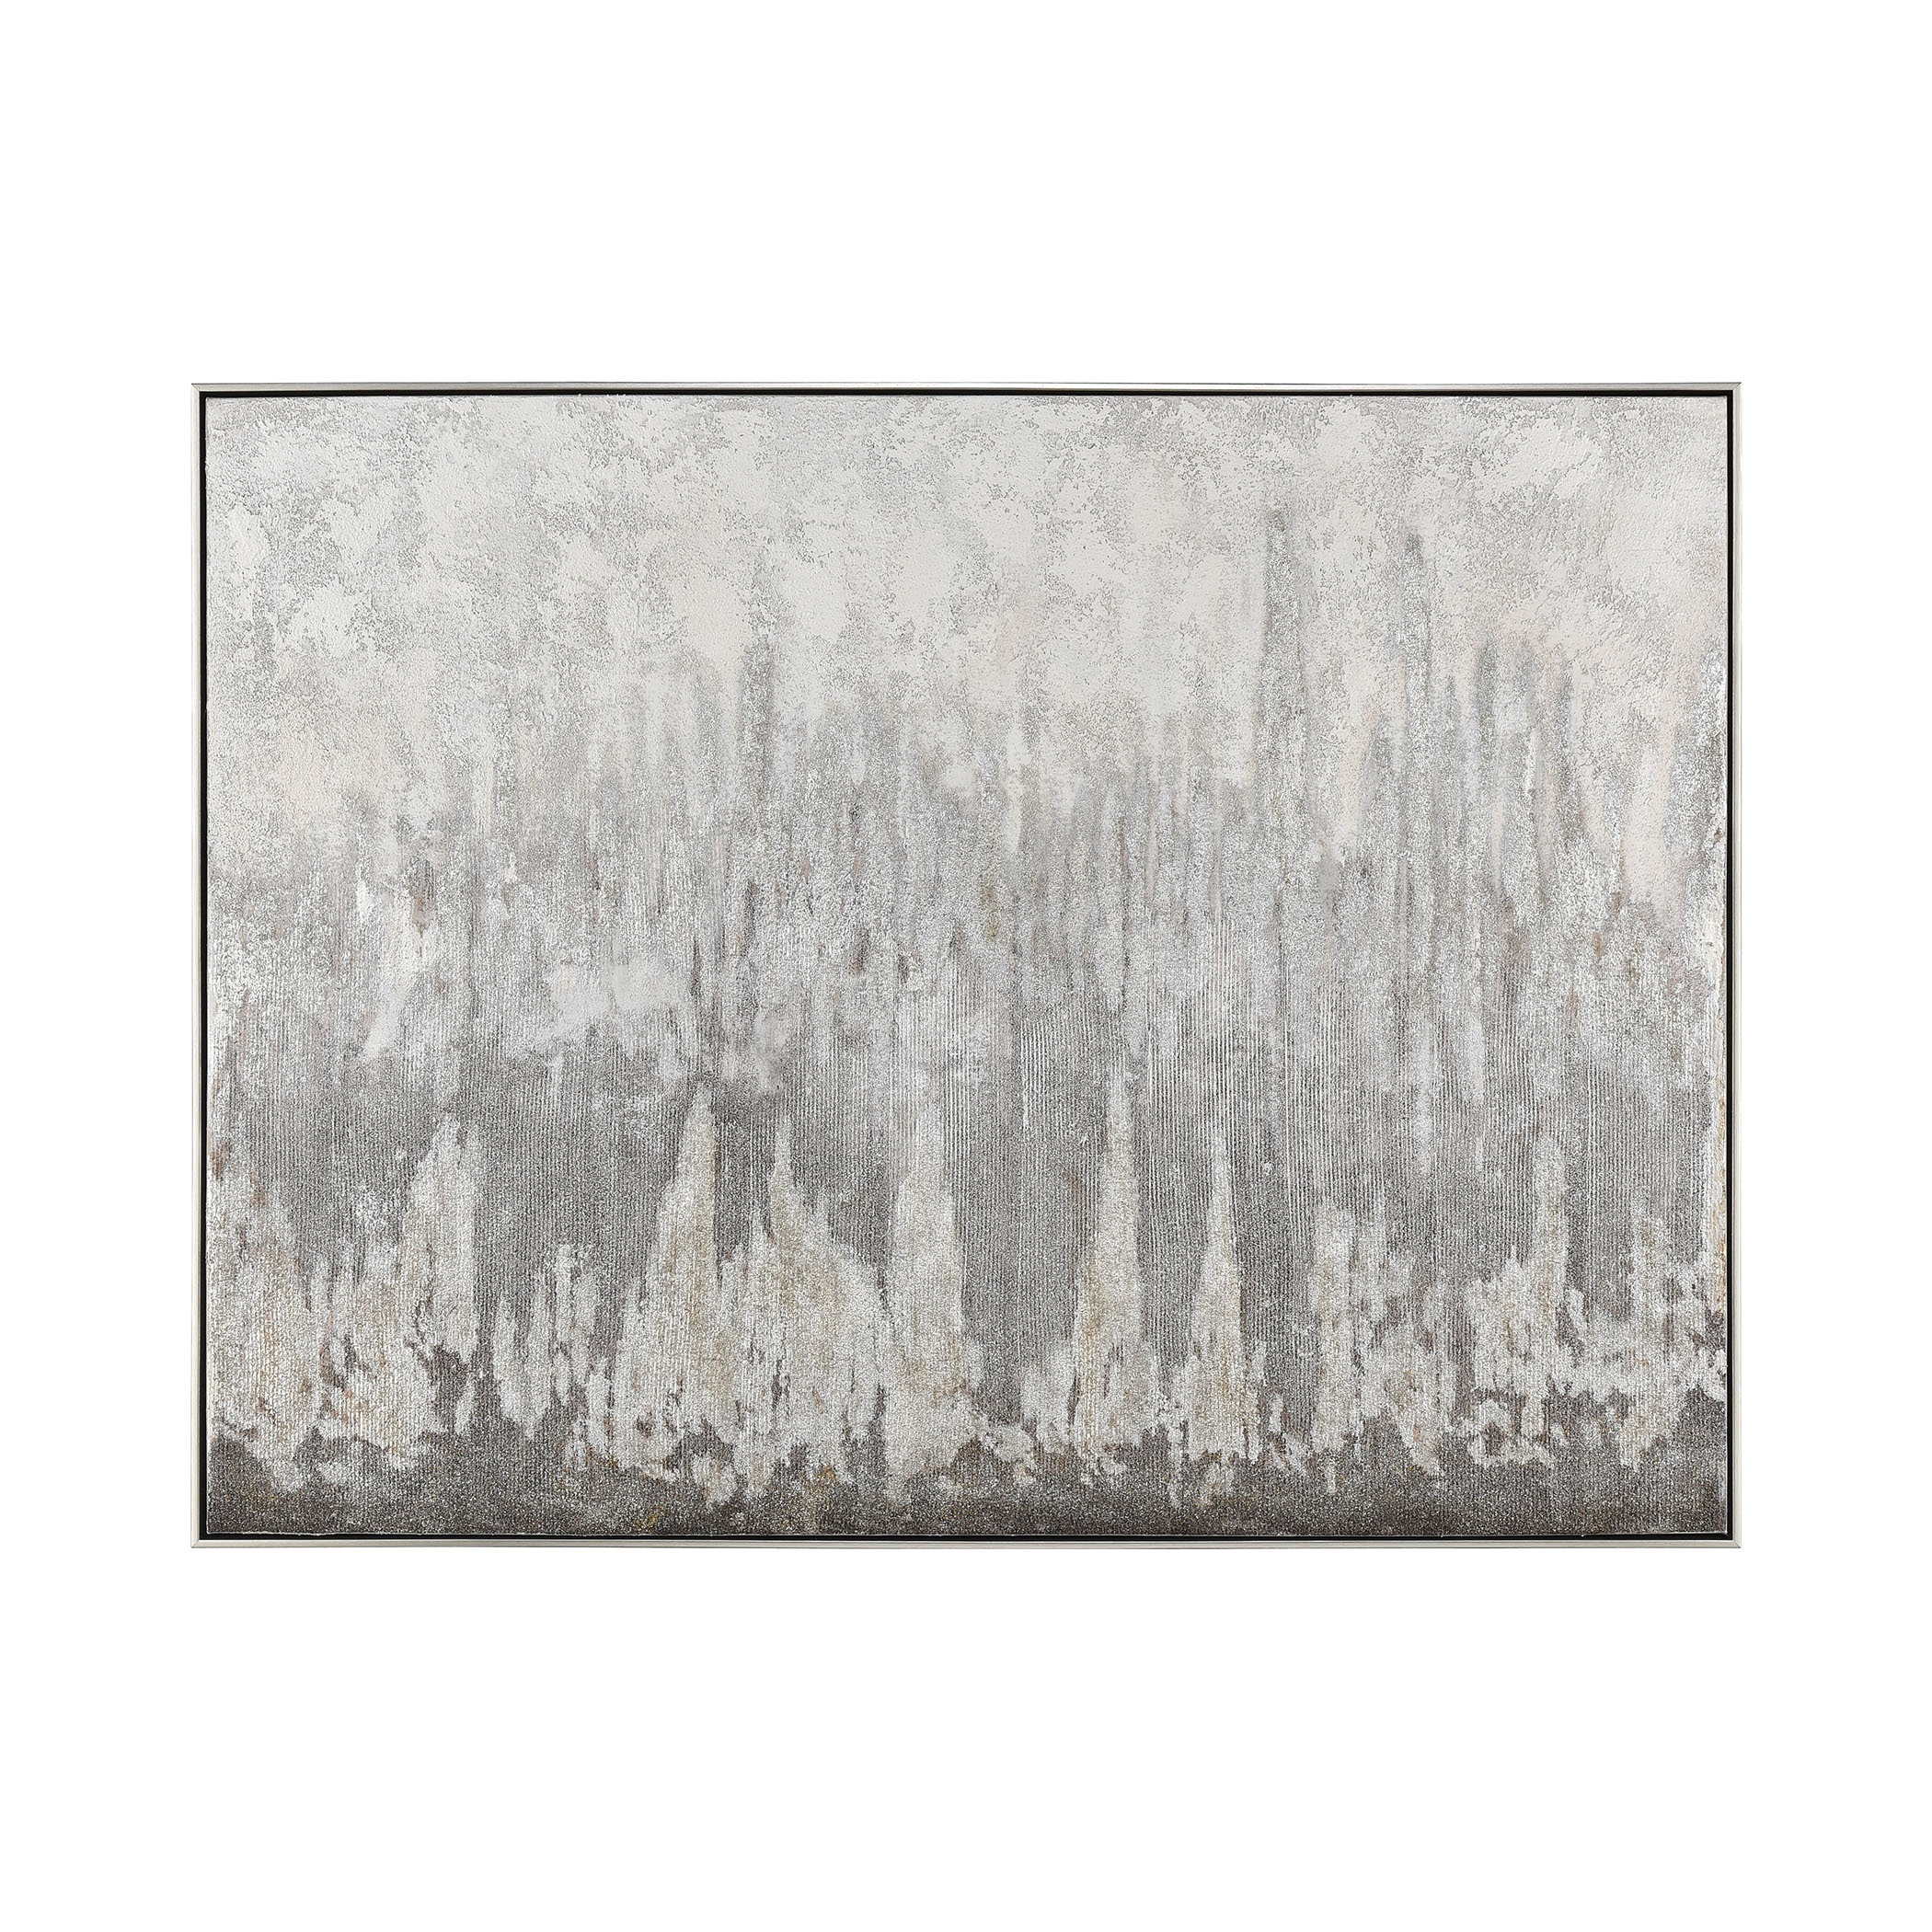 Shiso Vain Wall Decor in Grey and Black | Elk Home